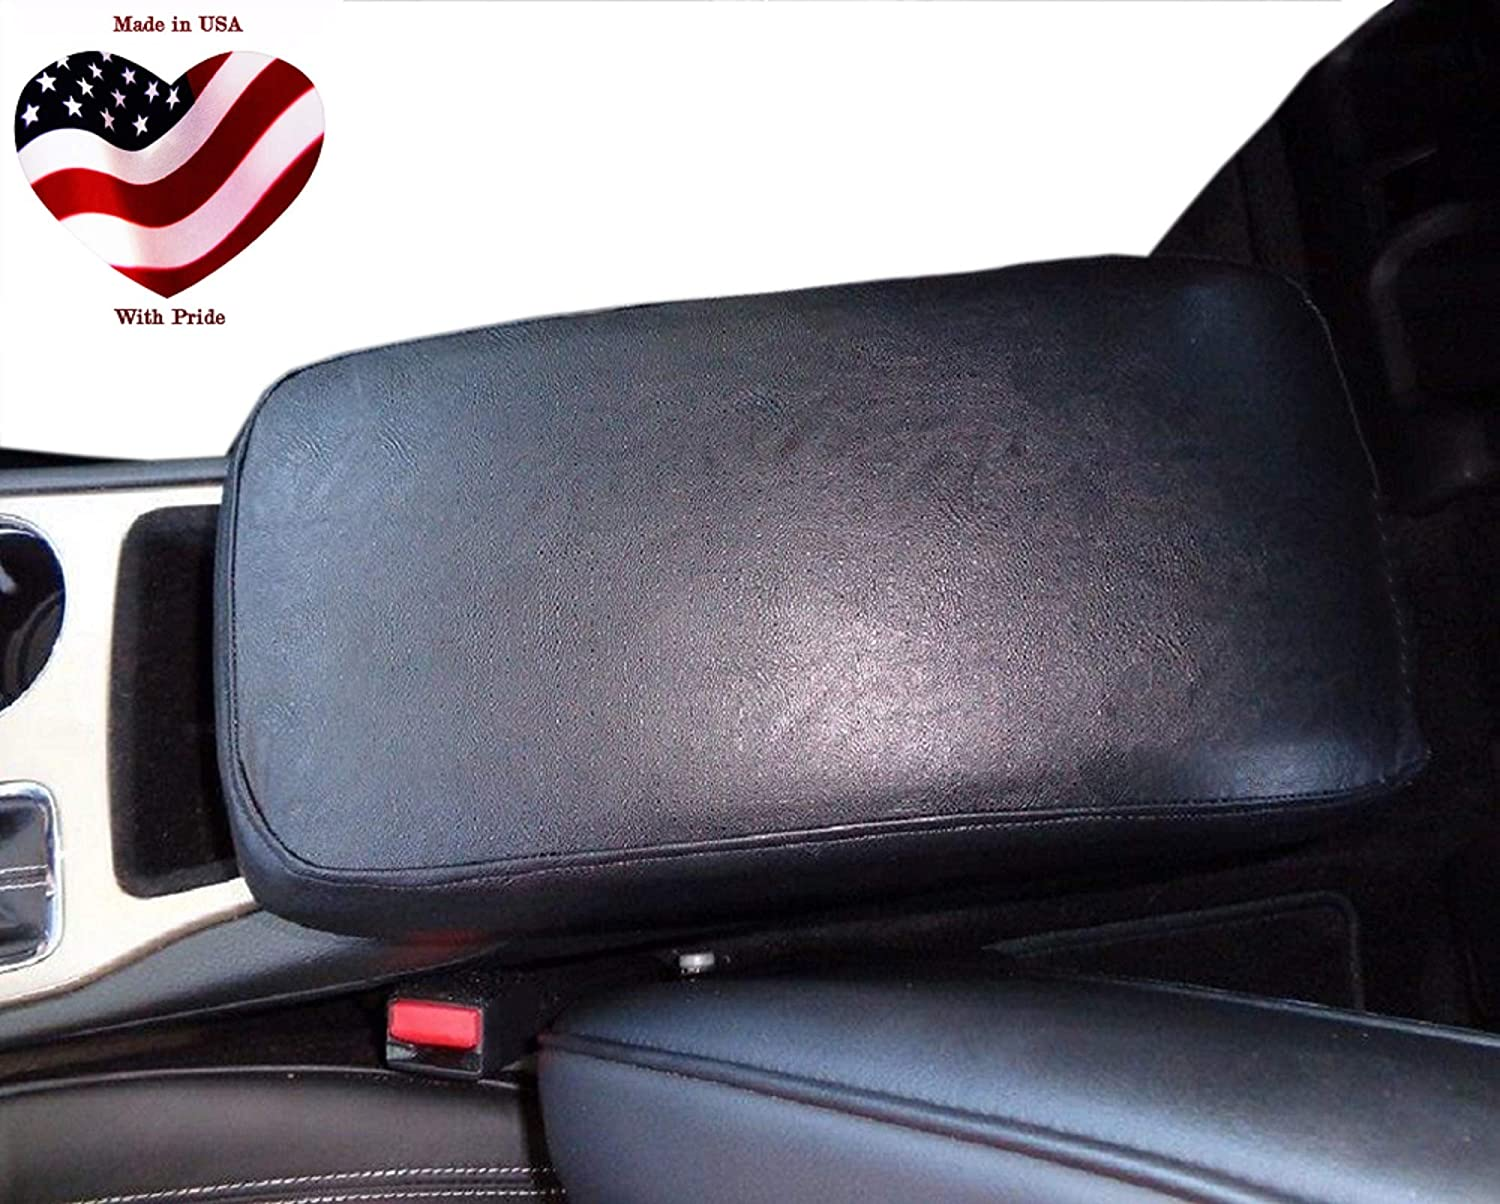 Car Charlotte Mall Console Covers Plus Made Denver Mall in Leather Center Faux USA Armrest